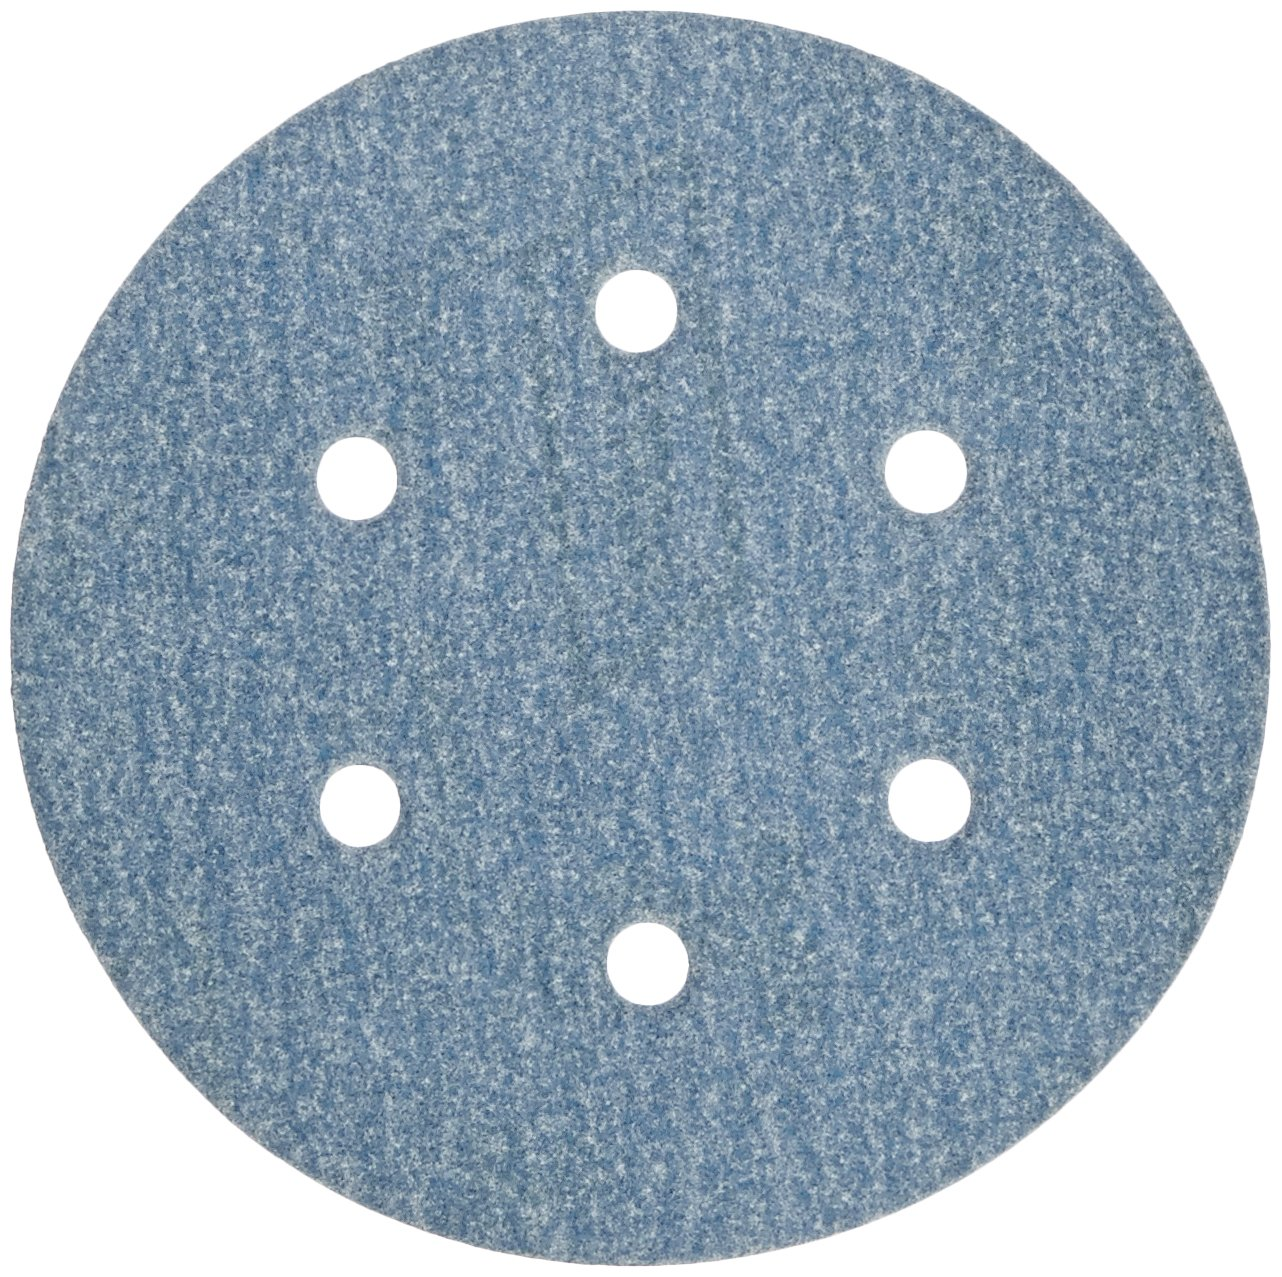 "Norton 3X High Performance Hook and Sand Paper Discs with 6 Hole, Ceramic Alumina, 6"" Diameter, Grit P150 Fine (Pack of 10)"